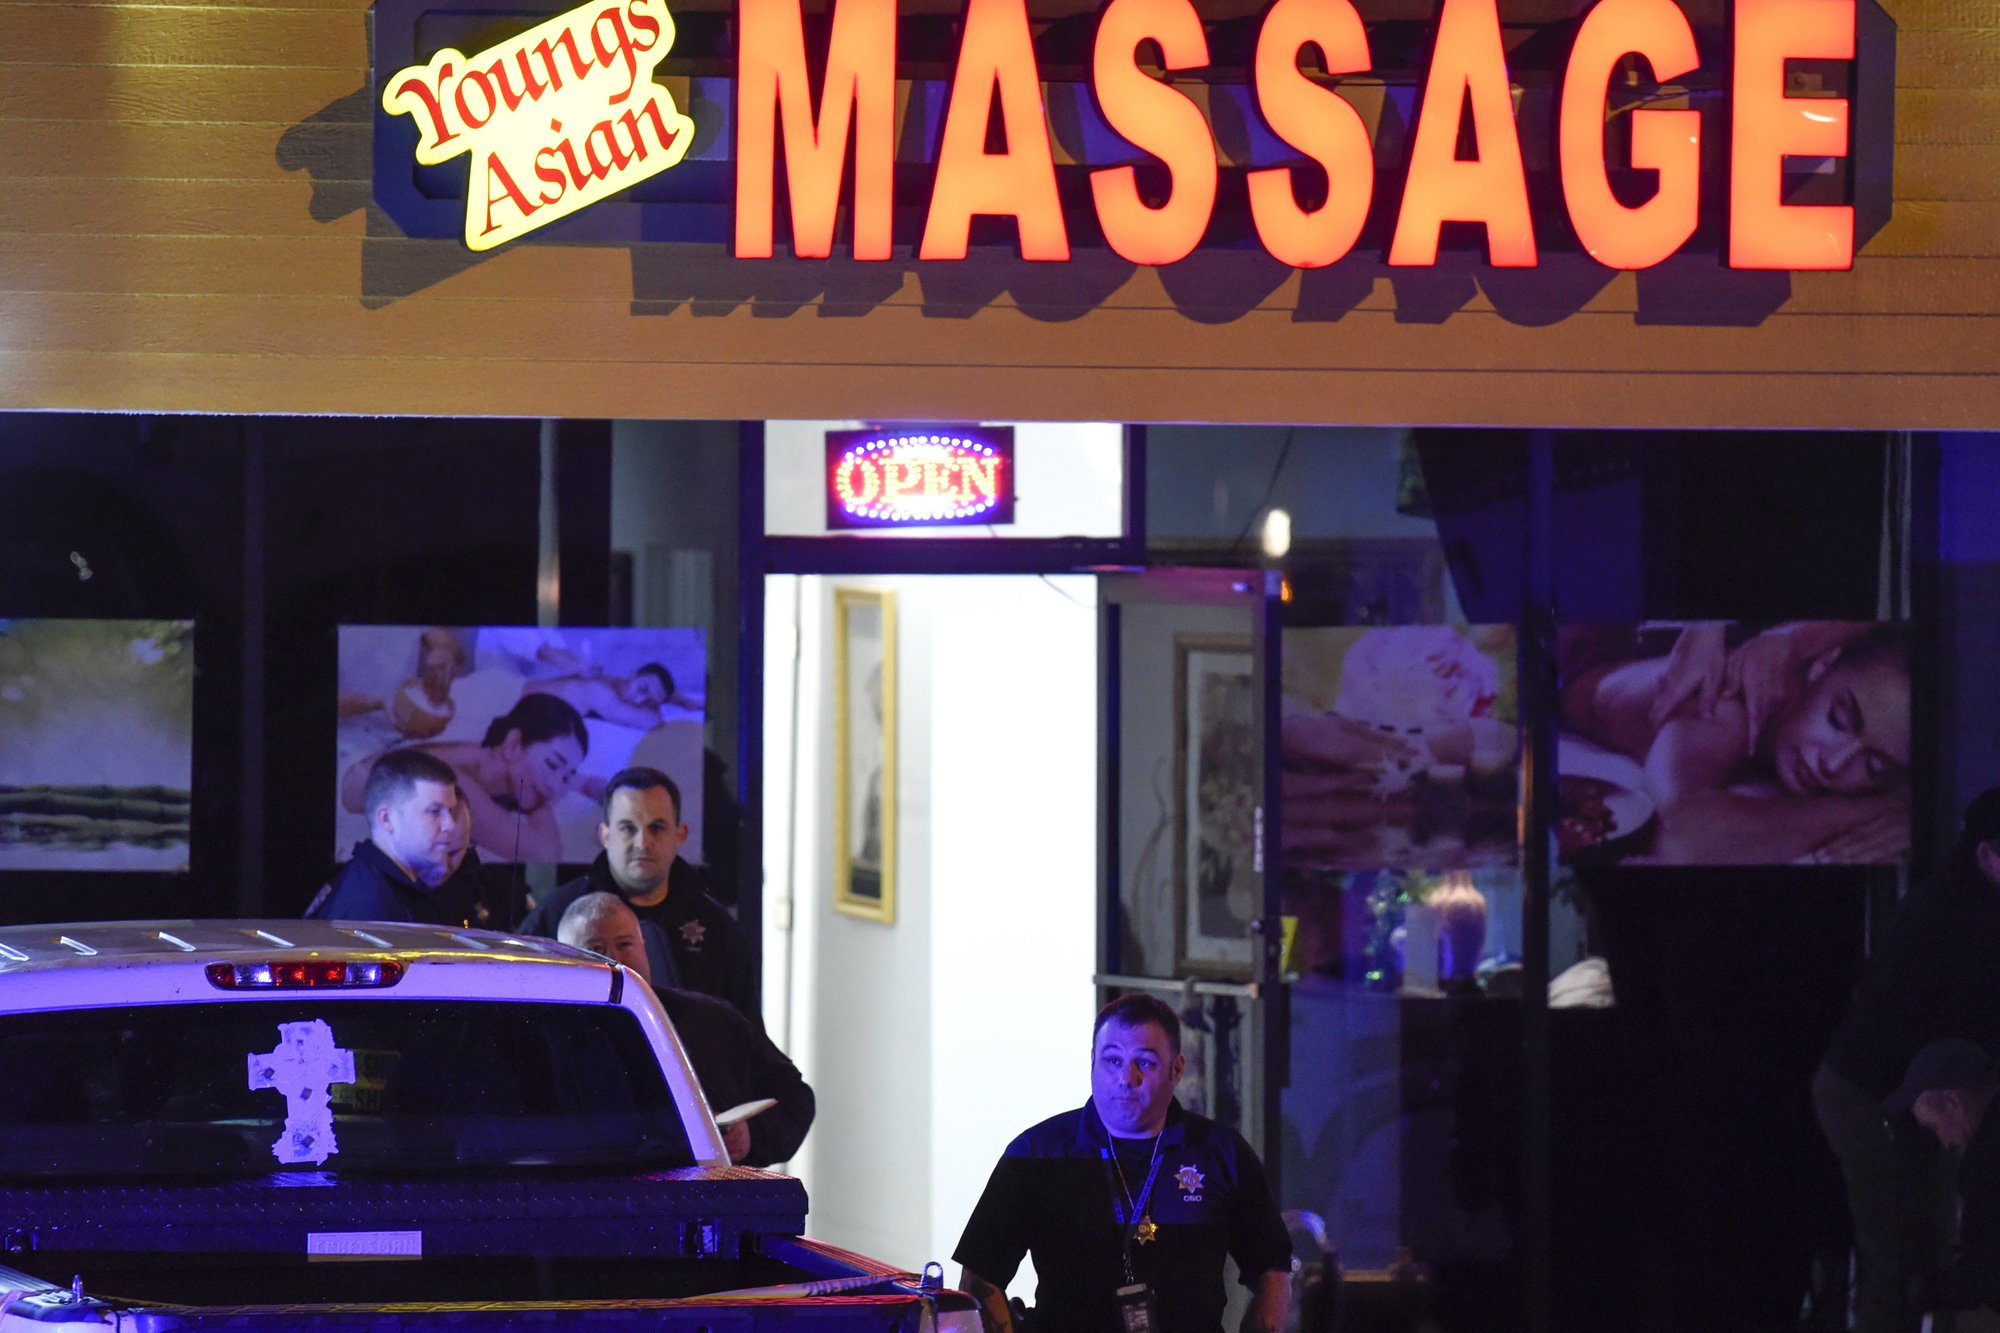 Georgia Massage Parlor Shootings Leave 8 Dead Man Captured